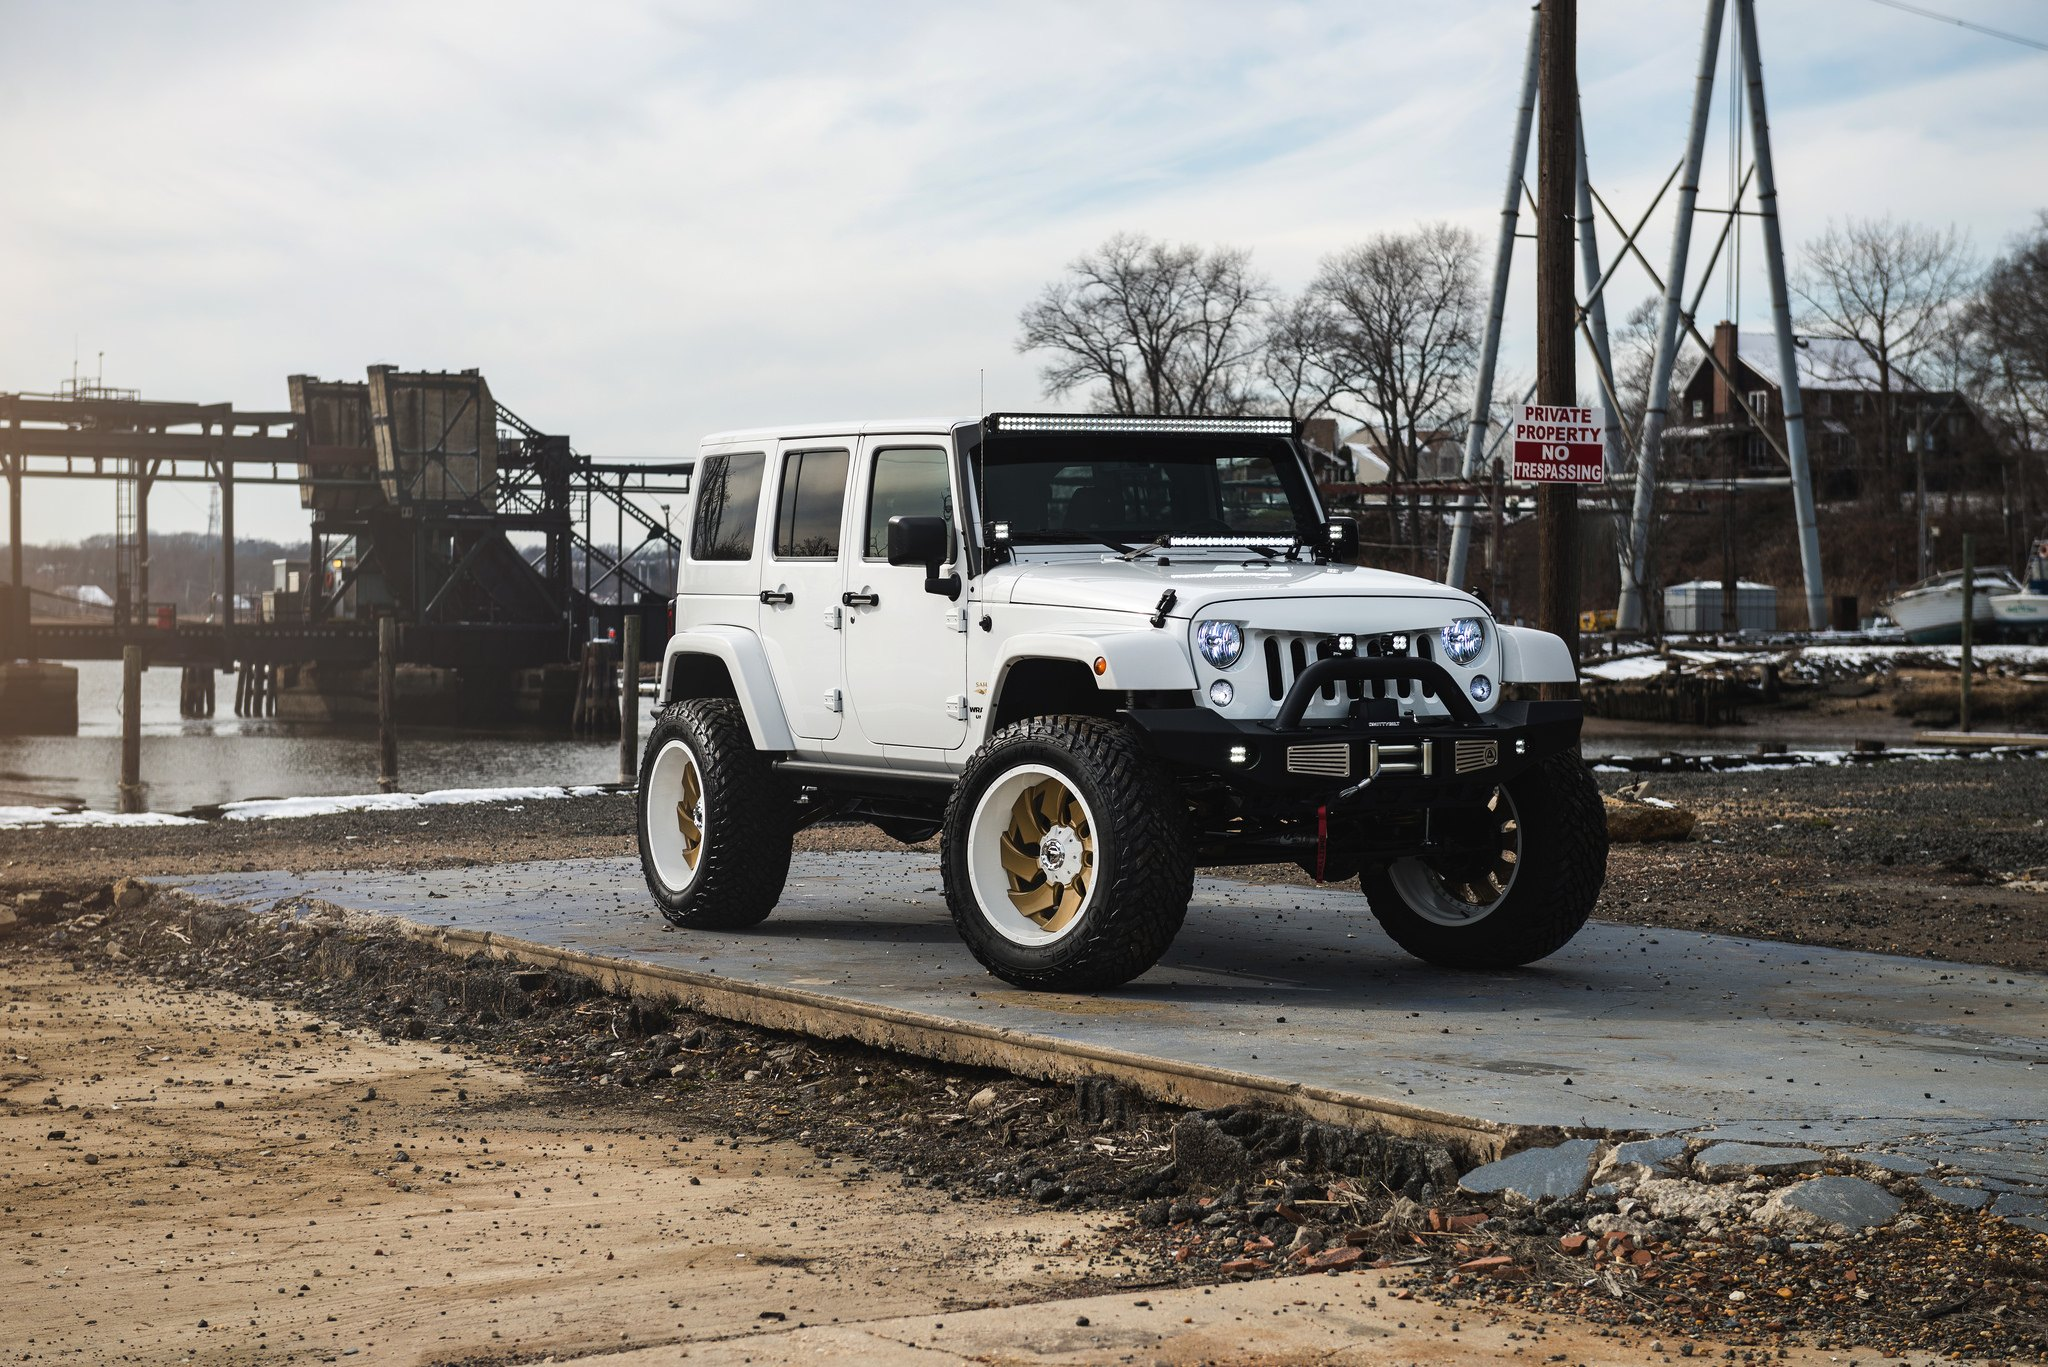 Lifted Jeep Wrangler JK Rolling on Gold Fuel Rims With Colormatched